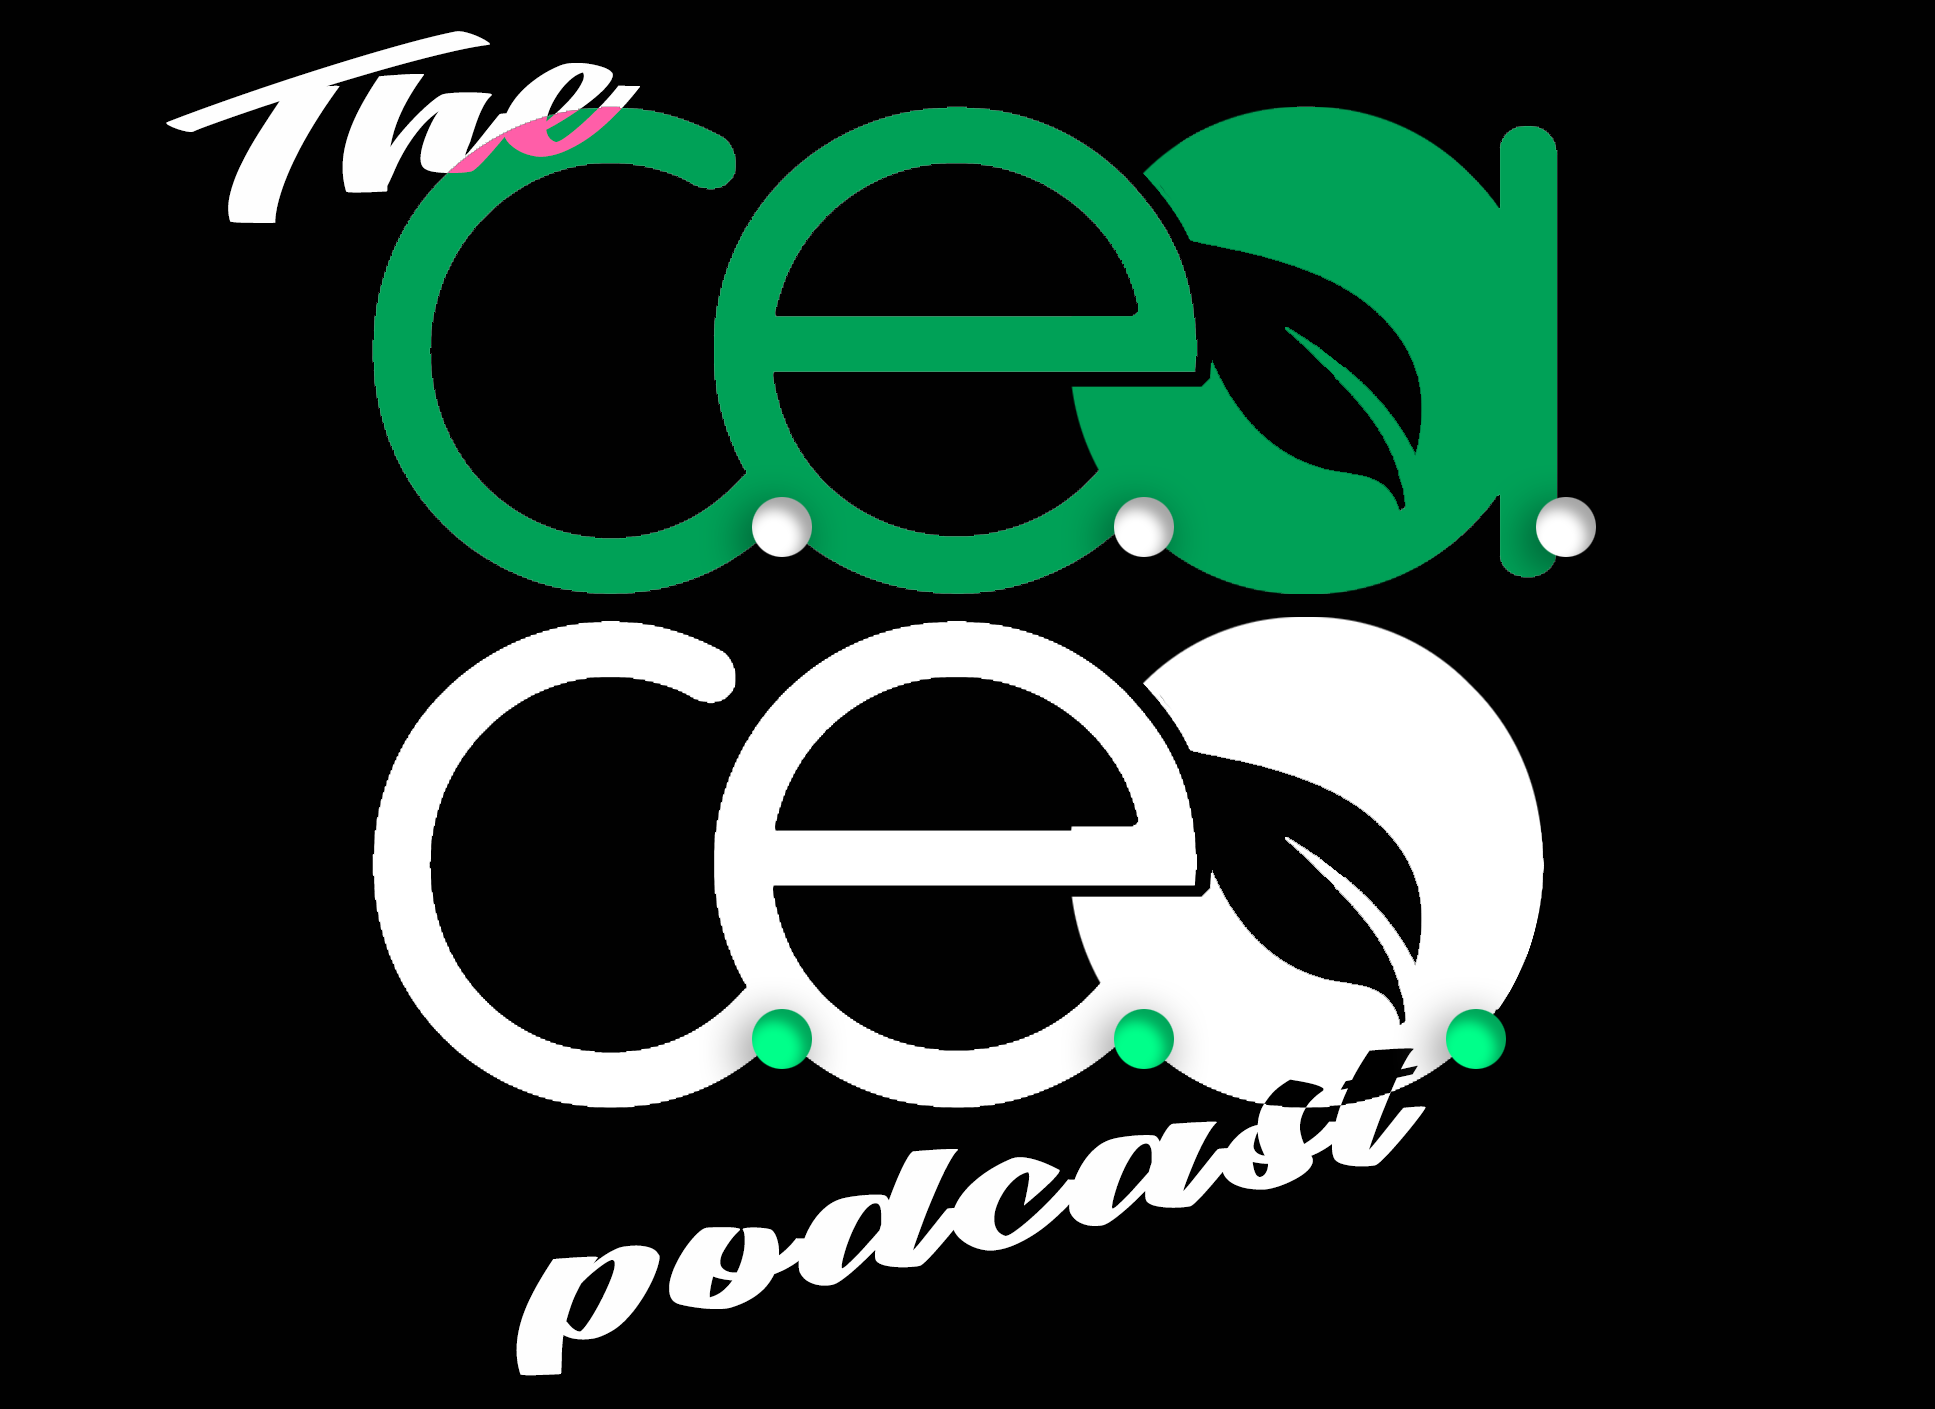 The CEA C.E.O. podcast